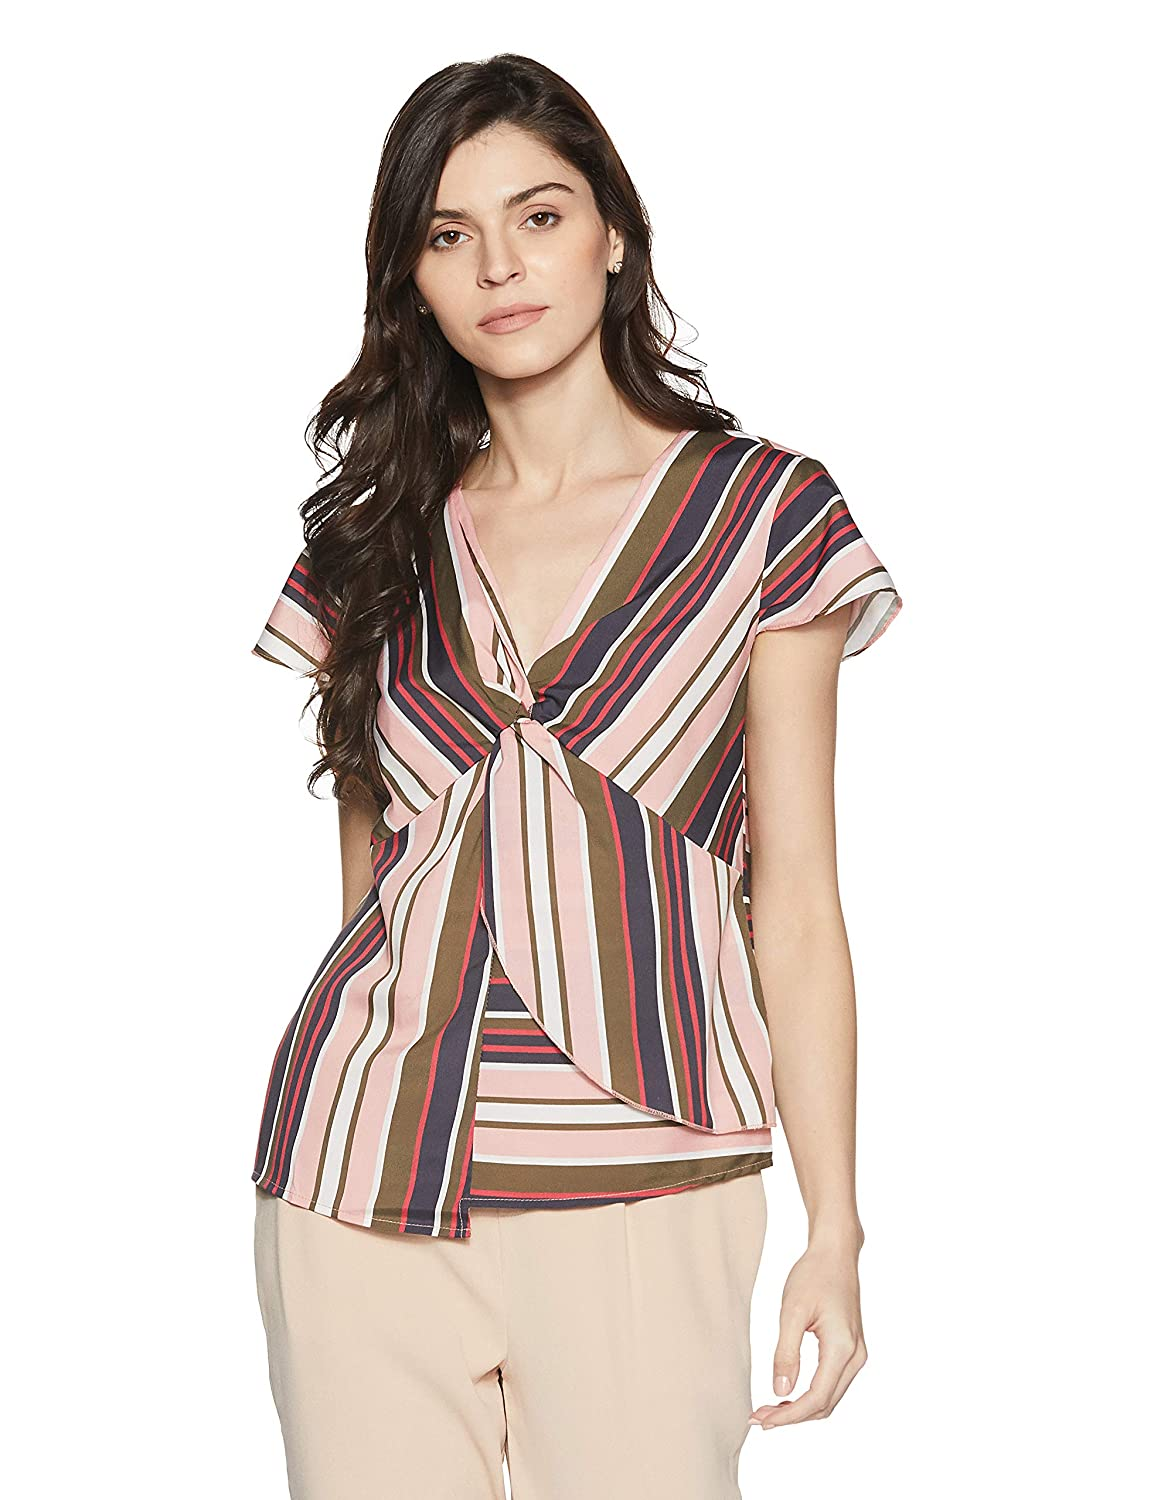 Stalk Buy Love Women's Crepe Striped Sharon Knotted Blouse amazon fashion end of season sale